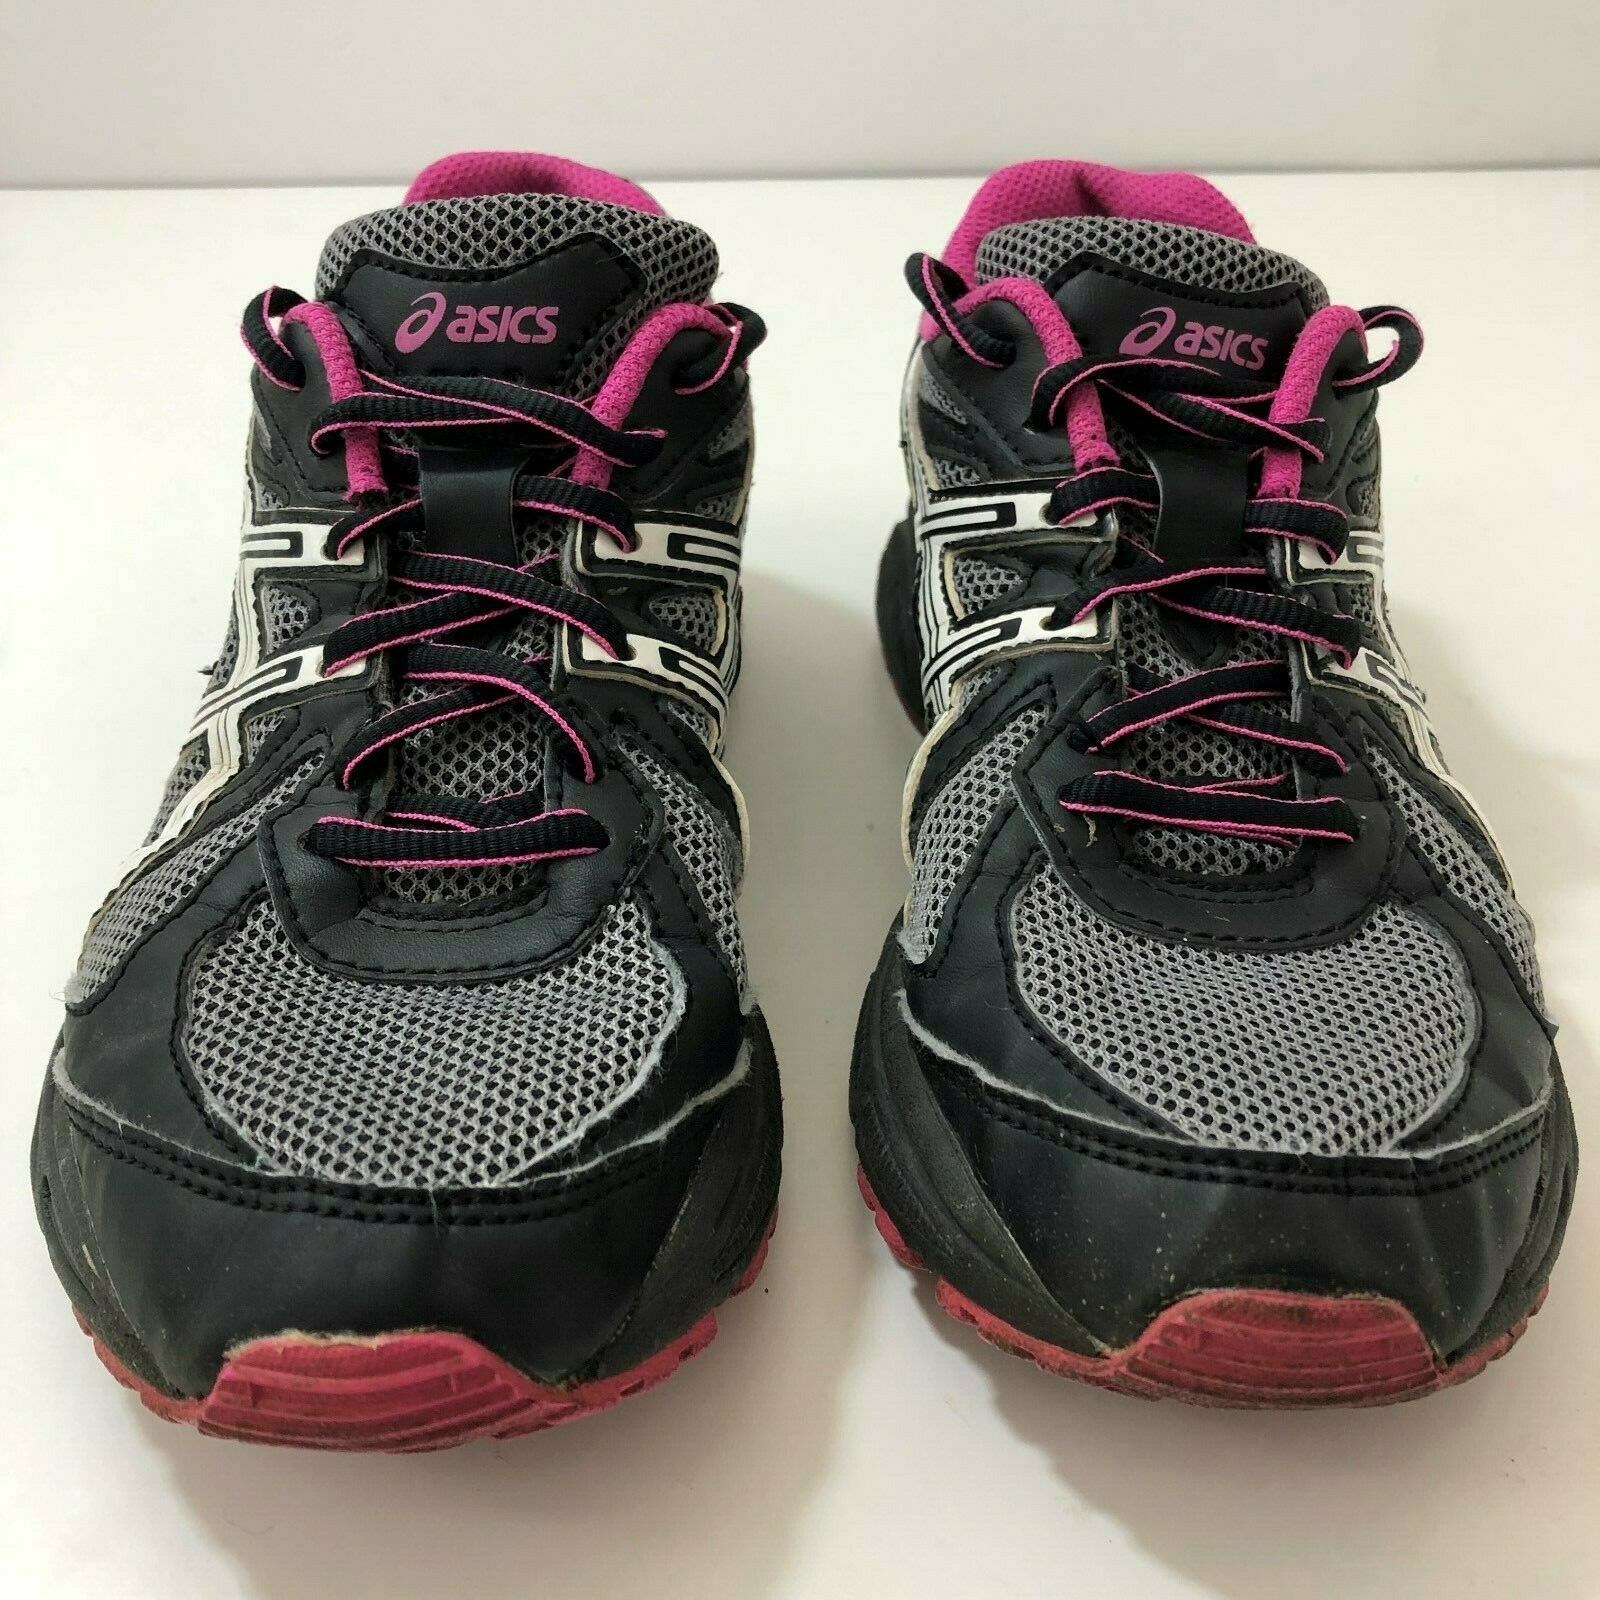 ASICS GLS T28AQ Running Shoes Sneakers Black Gray Purple Womens US Size 6.5